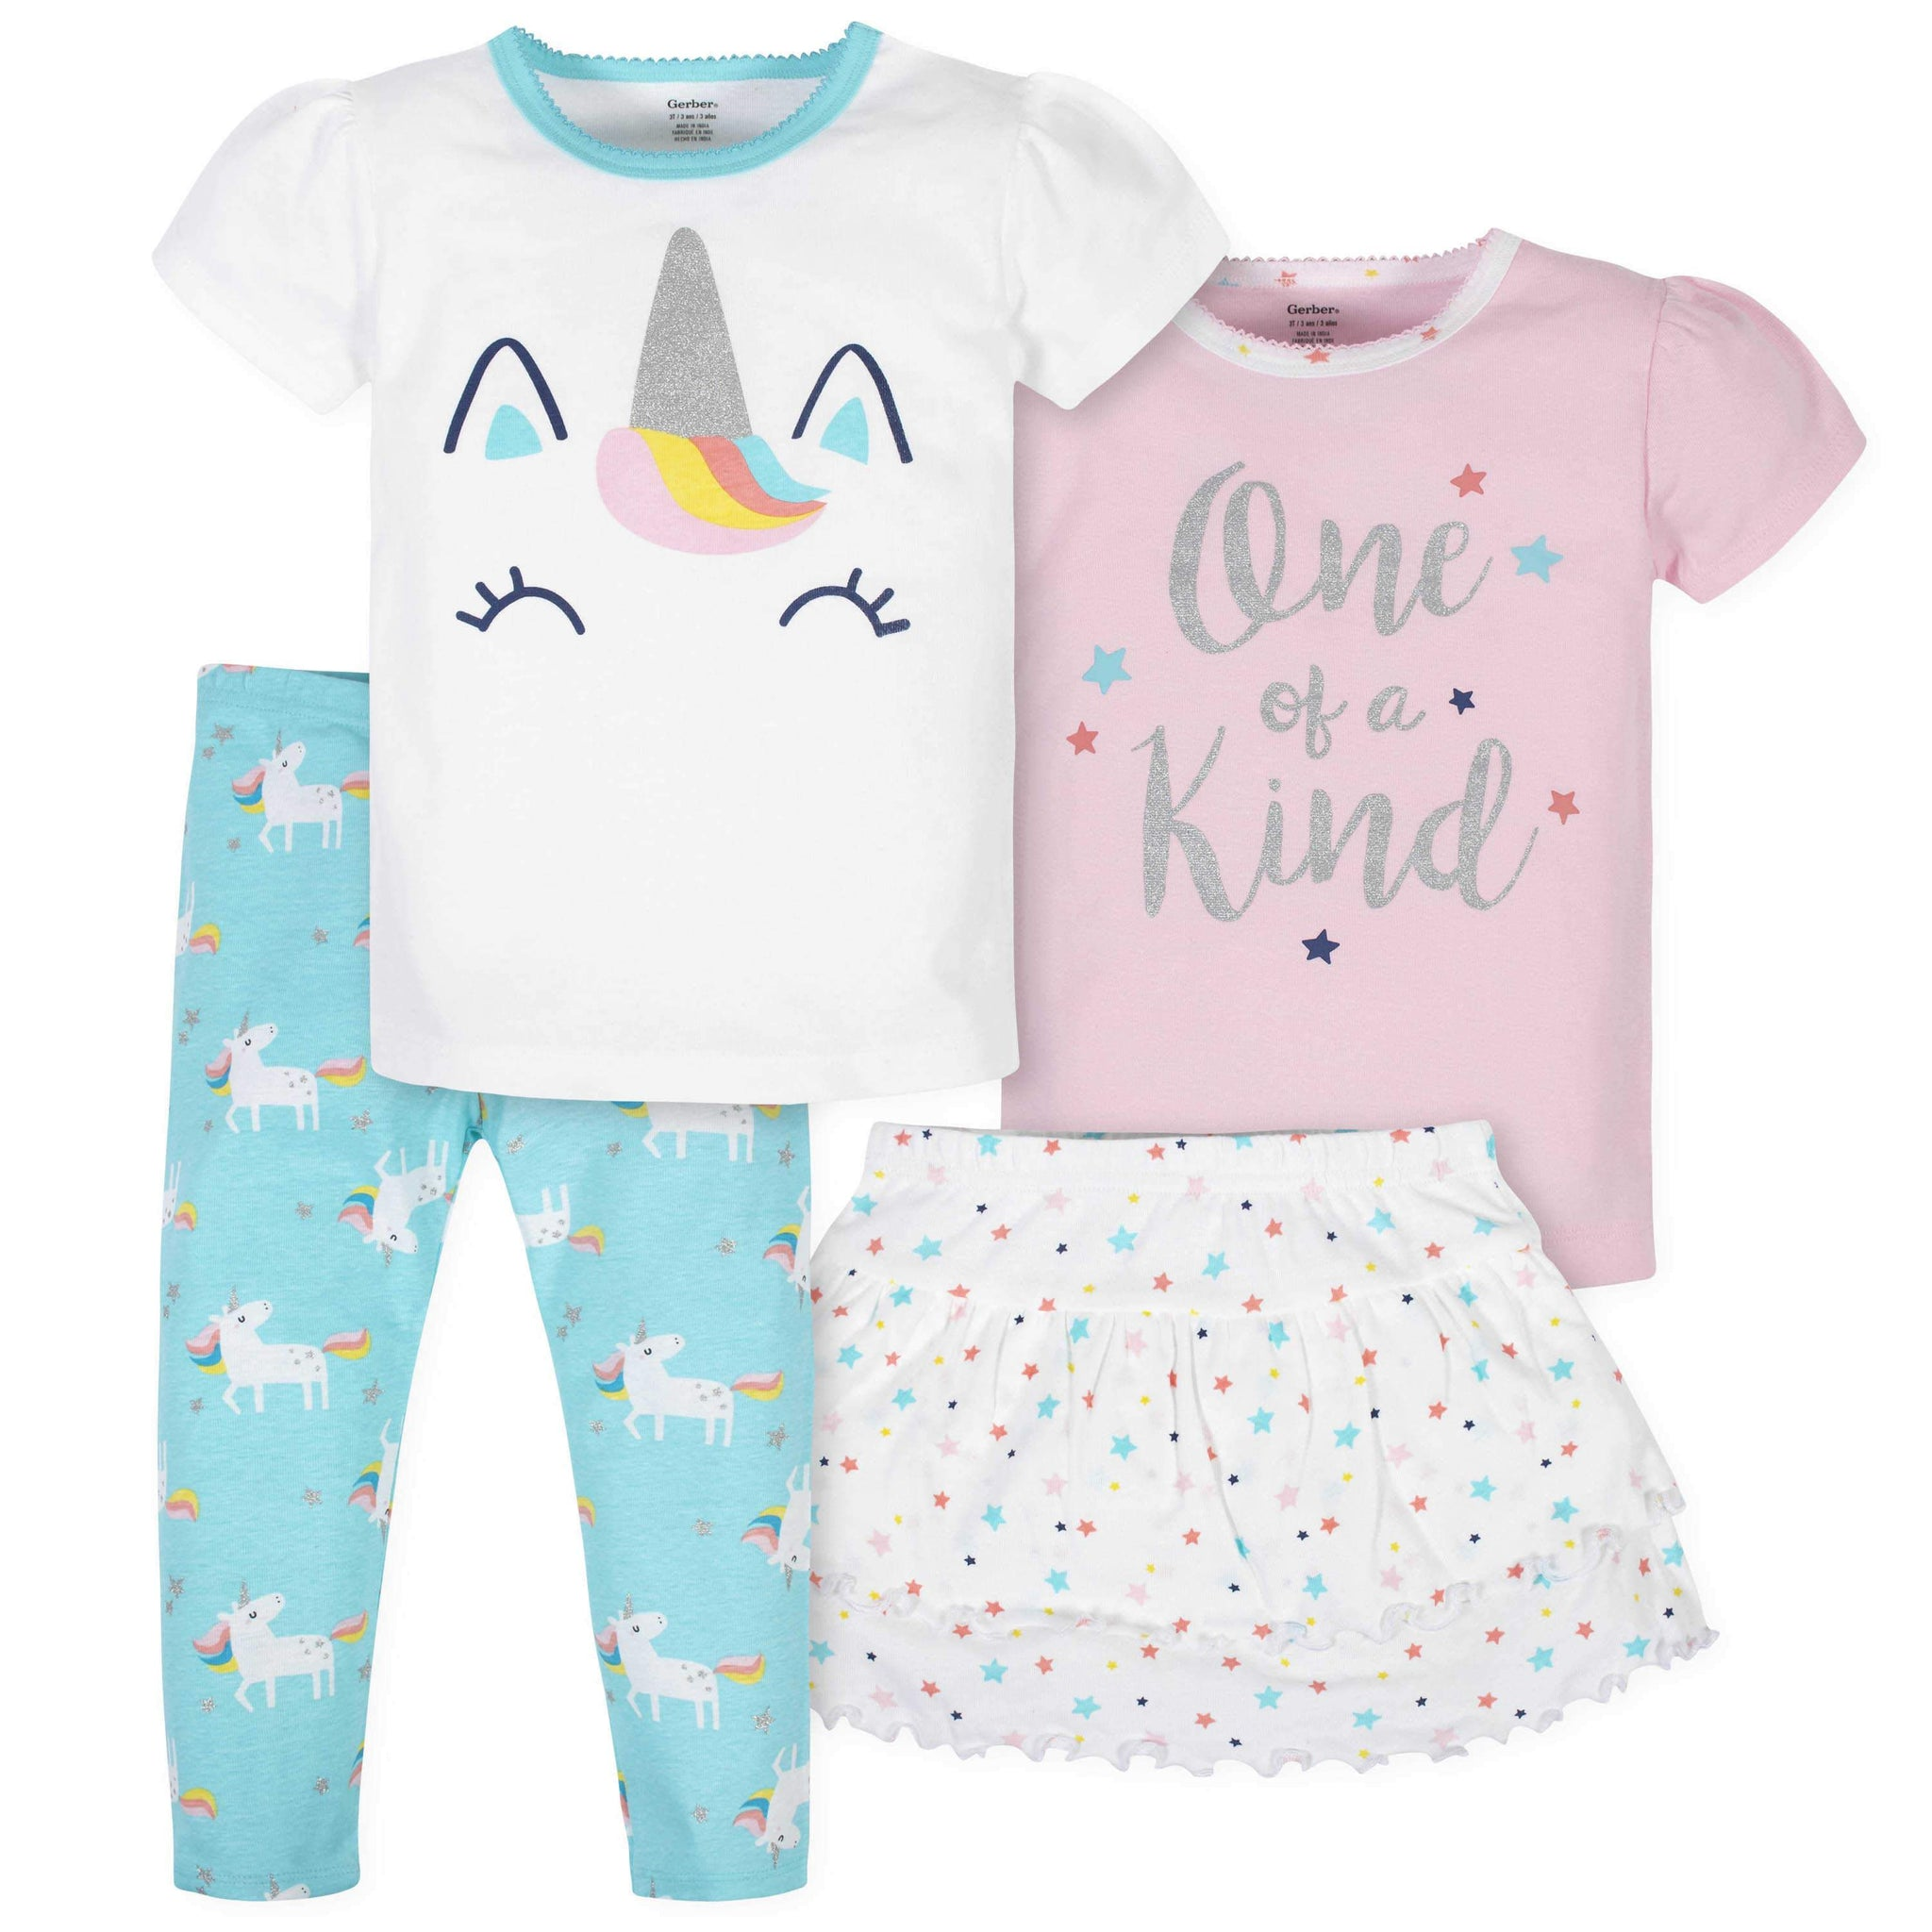 4-Piece Girls Unicorn Skirted Panty, Shirts, and Slim Pant Set